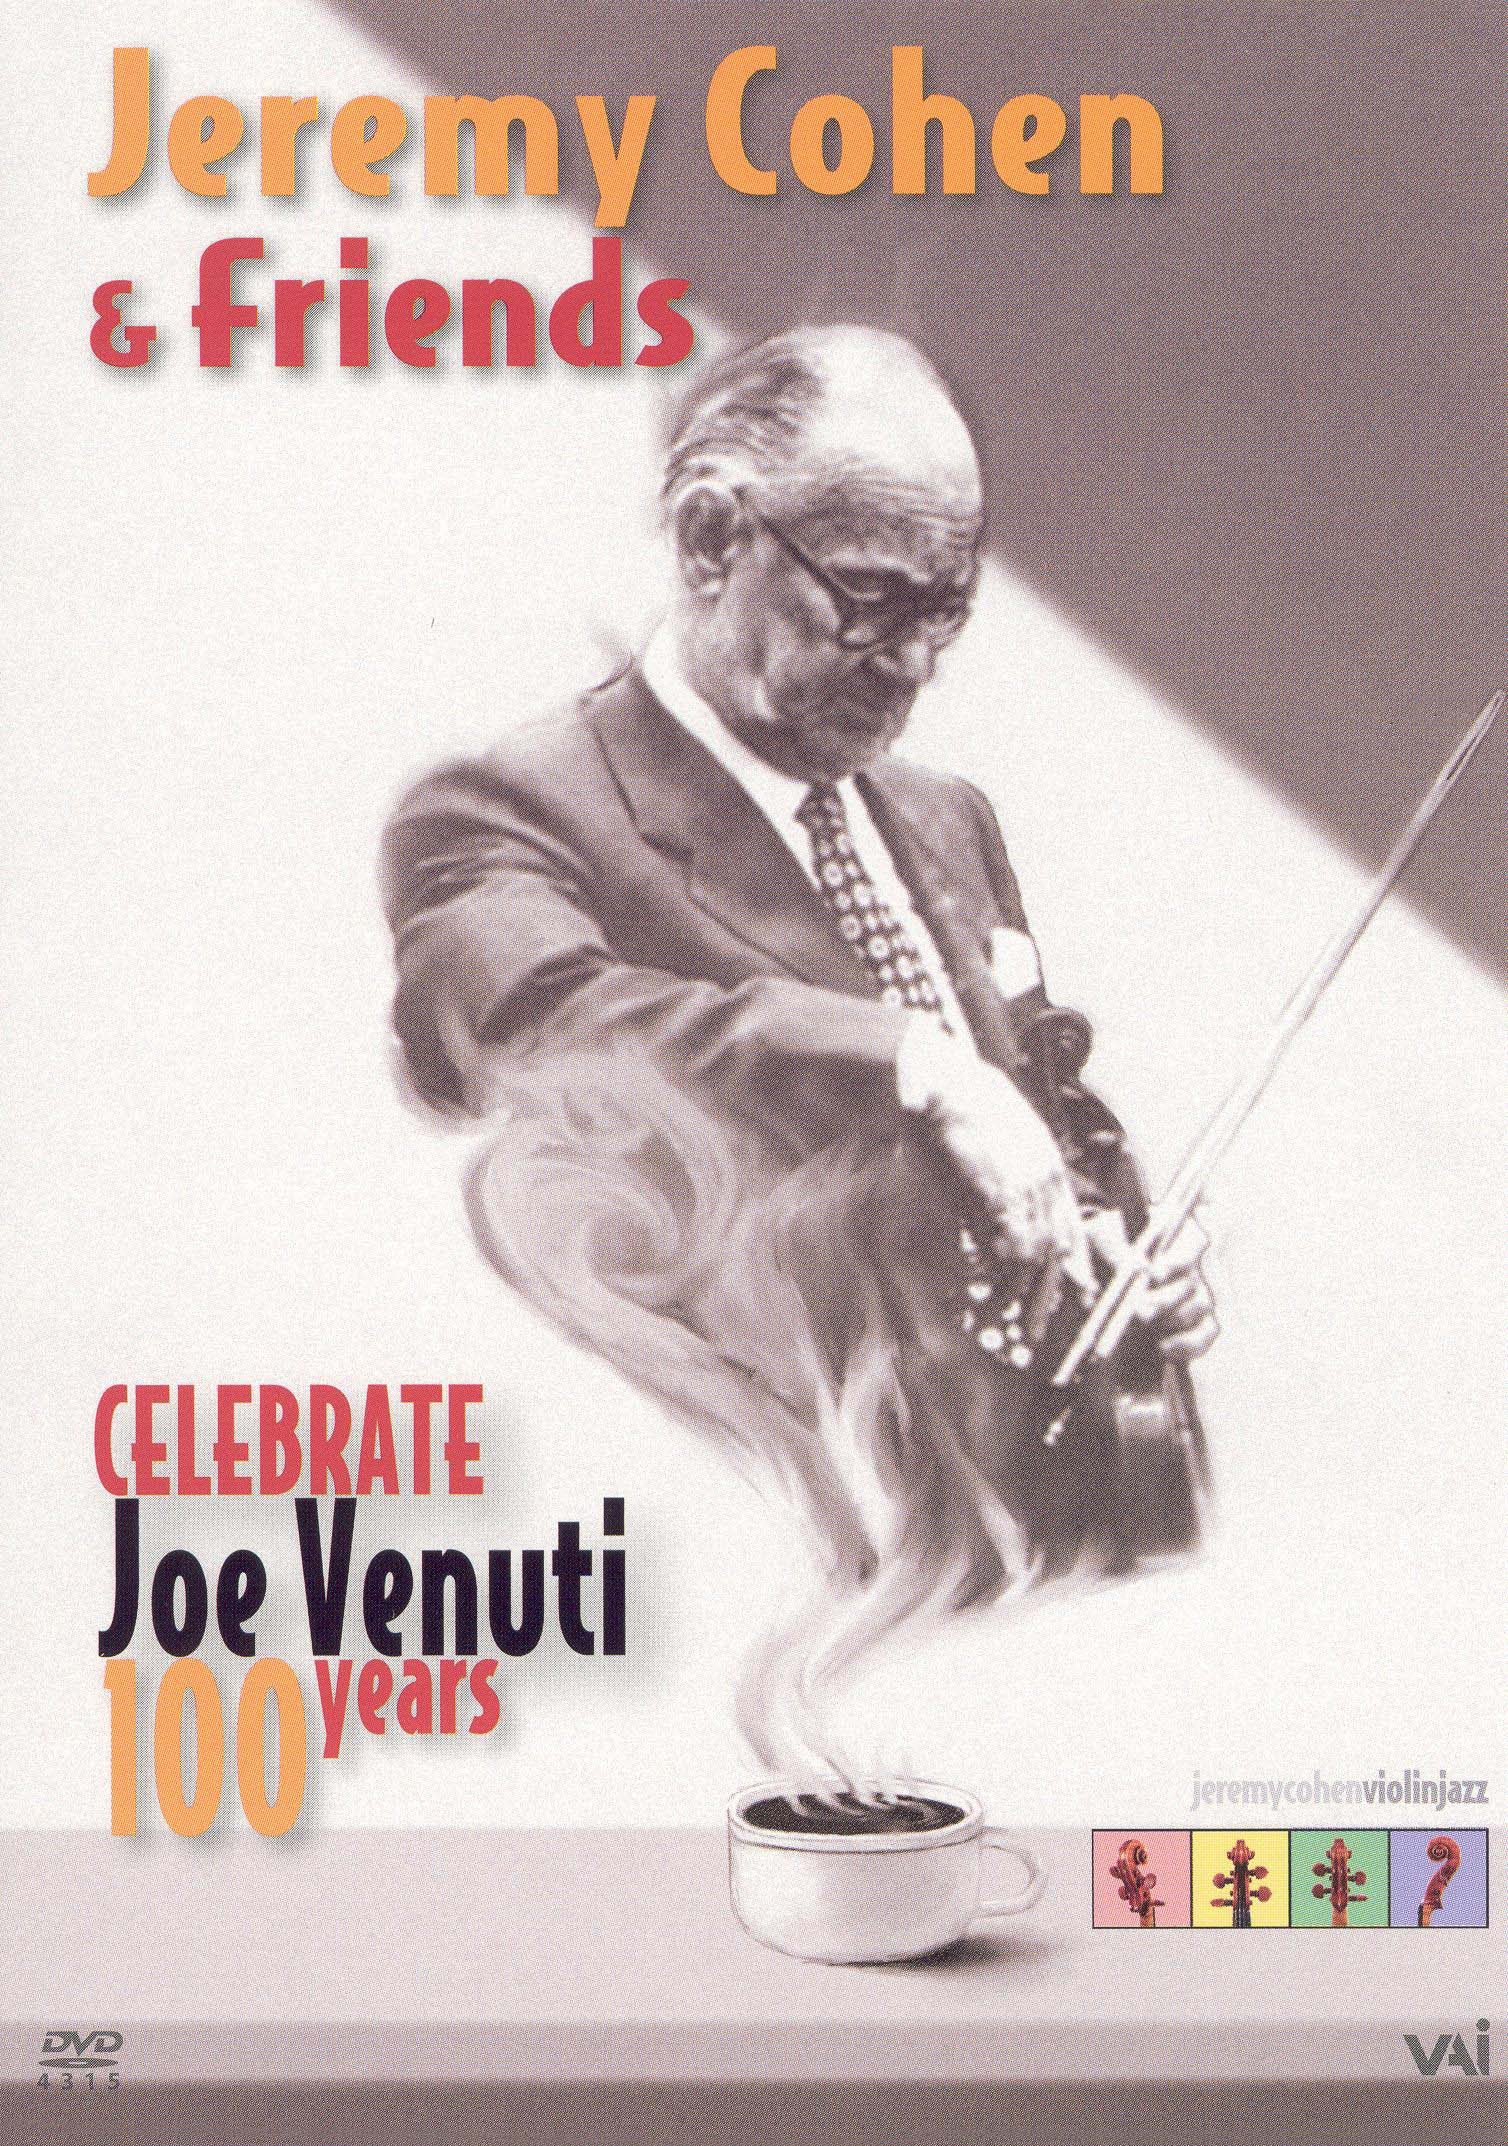 Jeremy Cohen and Friends: Celebrate - Joe Venuti 100 Years